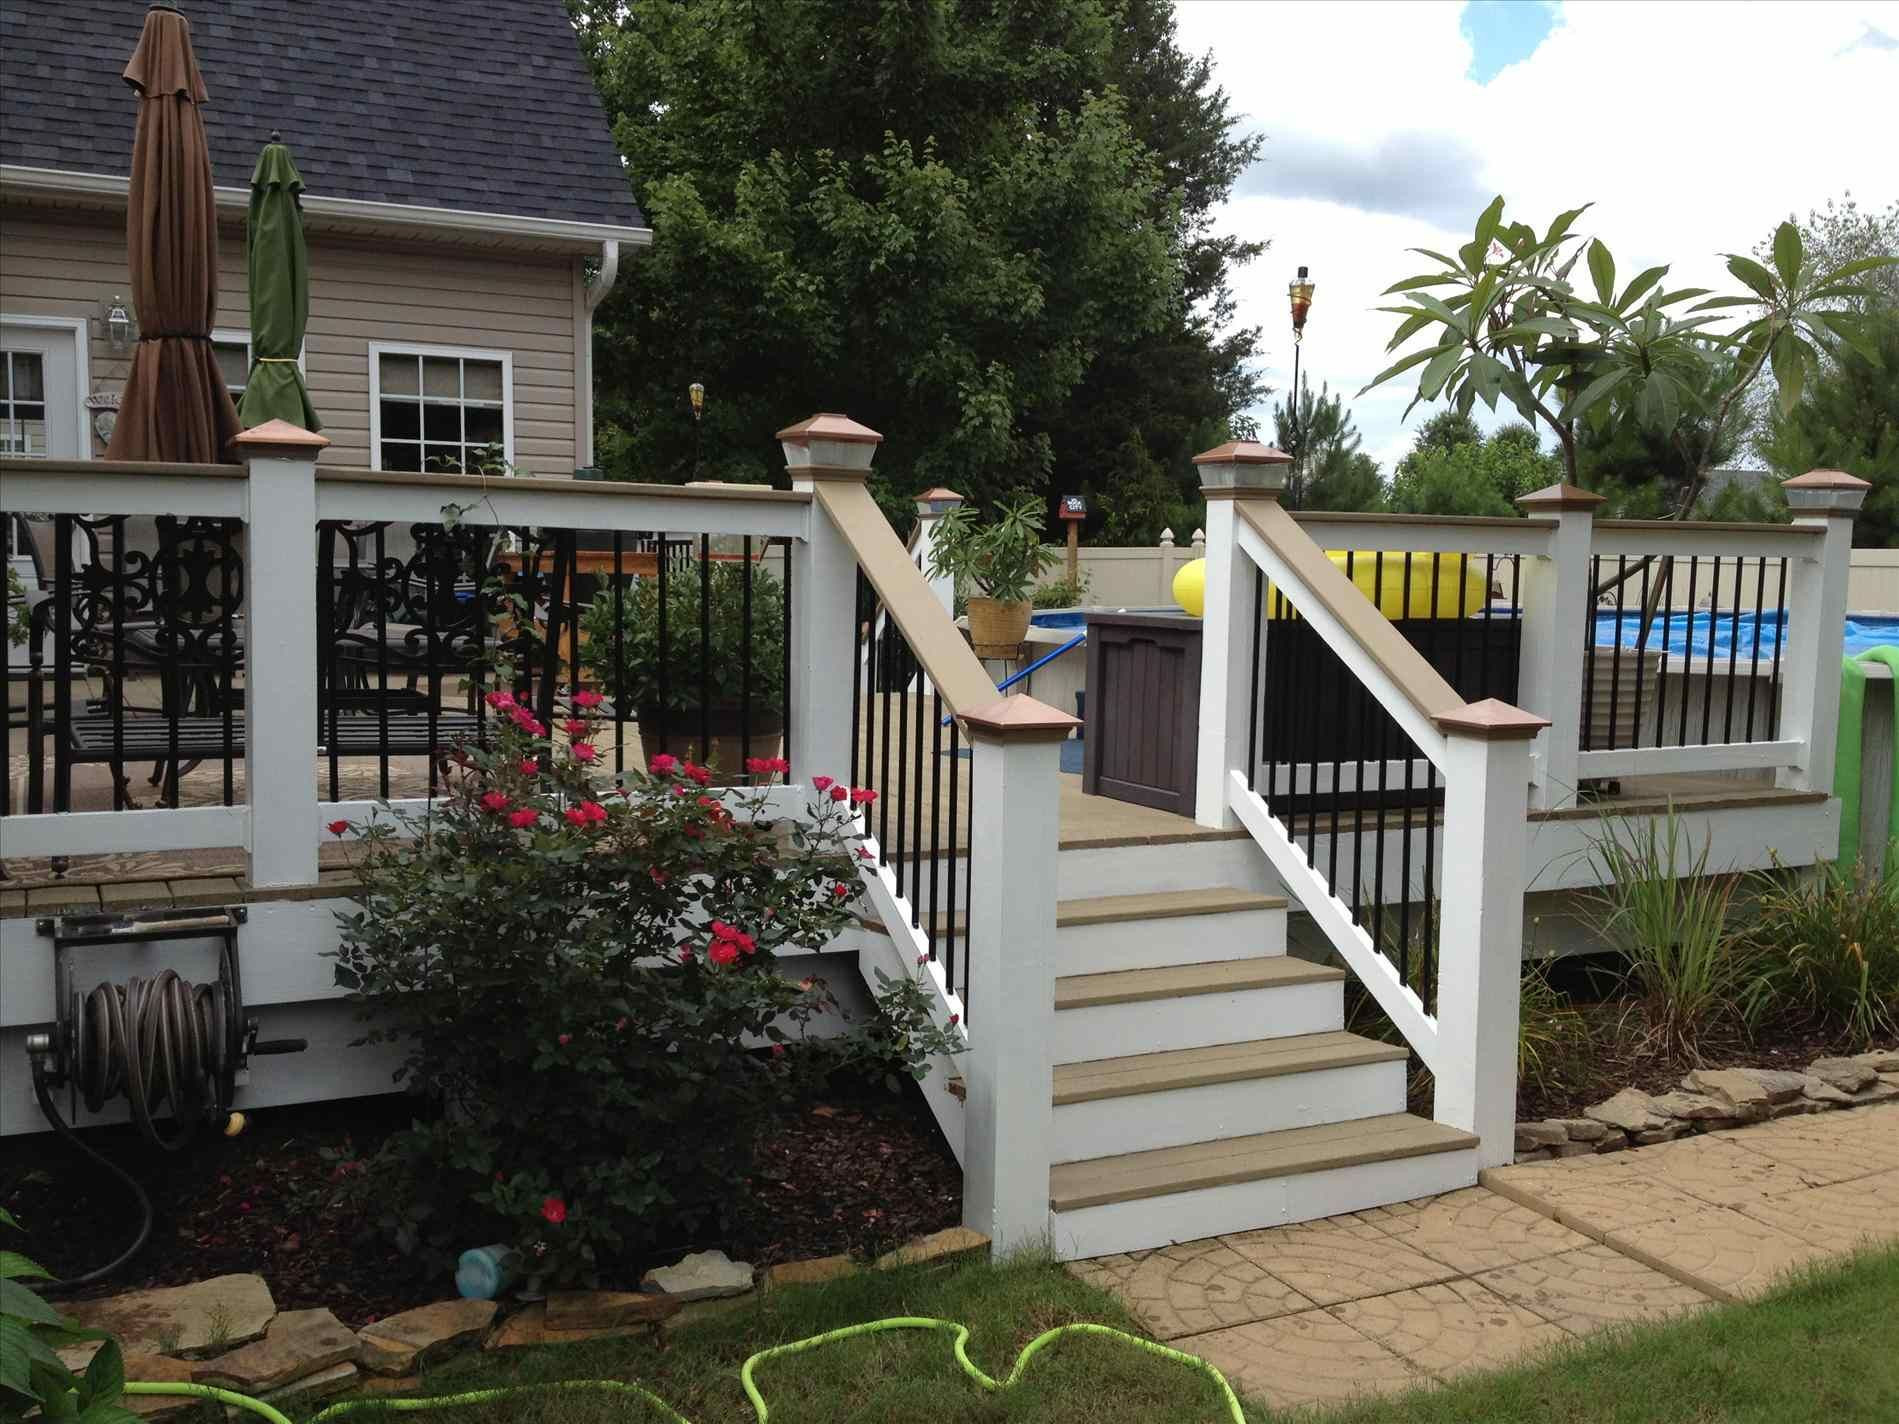 Lowes Deck Paint Restore  Cabot Stain Lowes for Best Floor Deck Painting Ideas